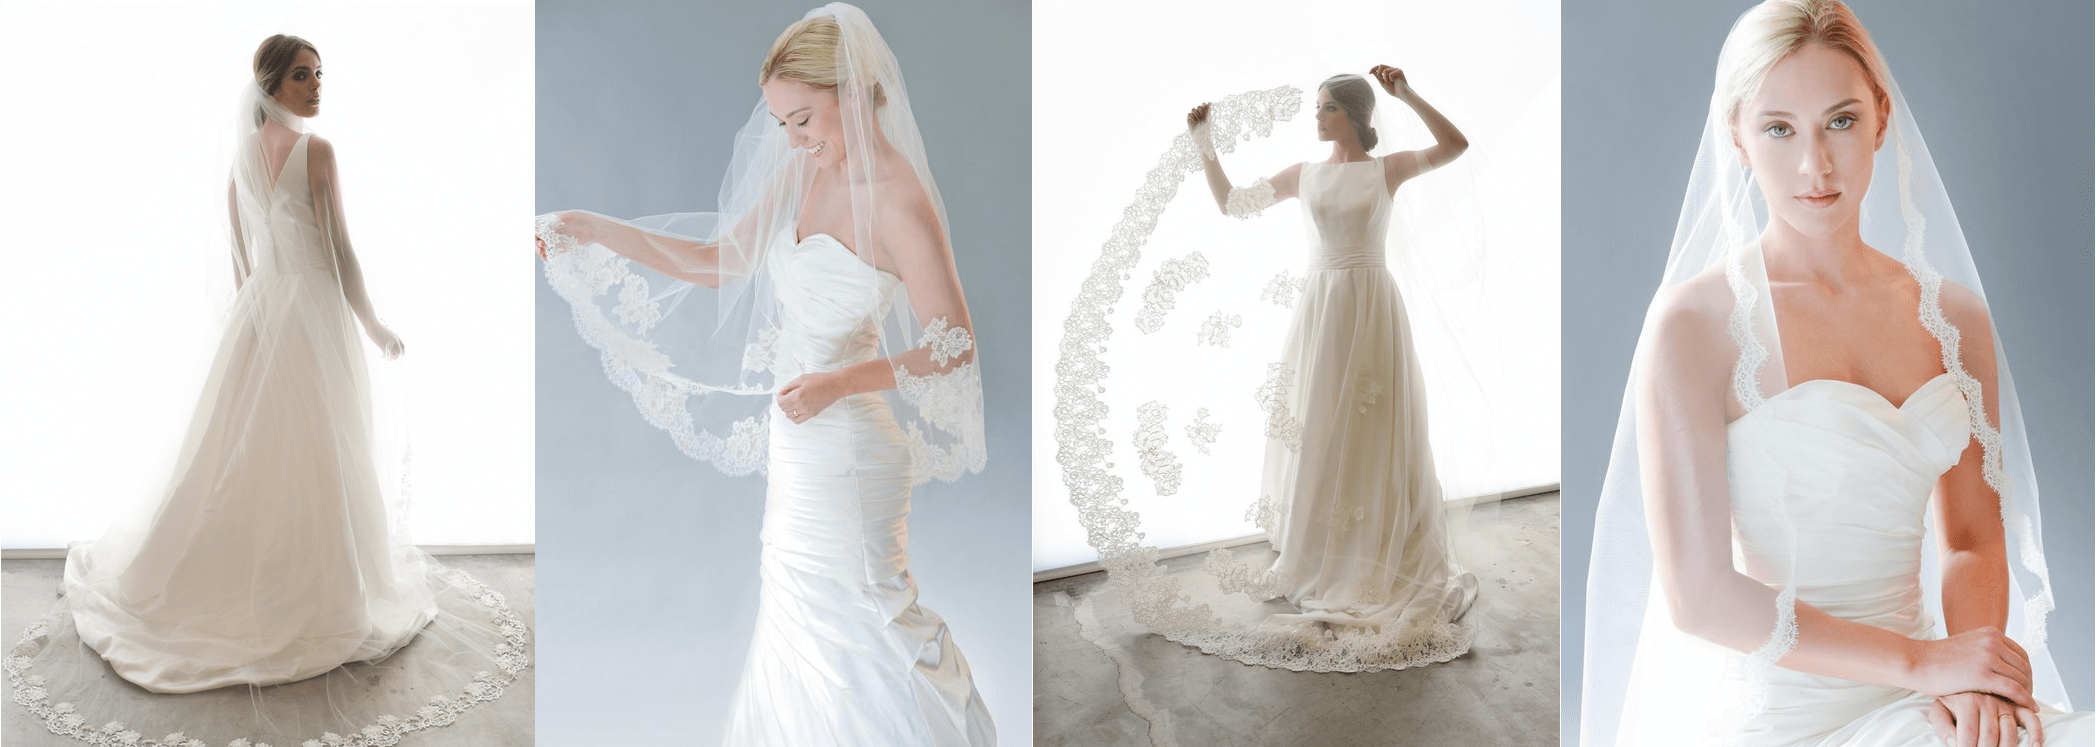 Georgetown - Washington DC Bridal Boutique - Washington DC ...